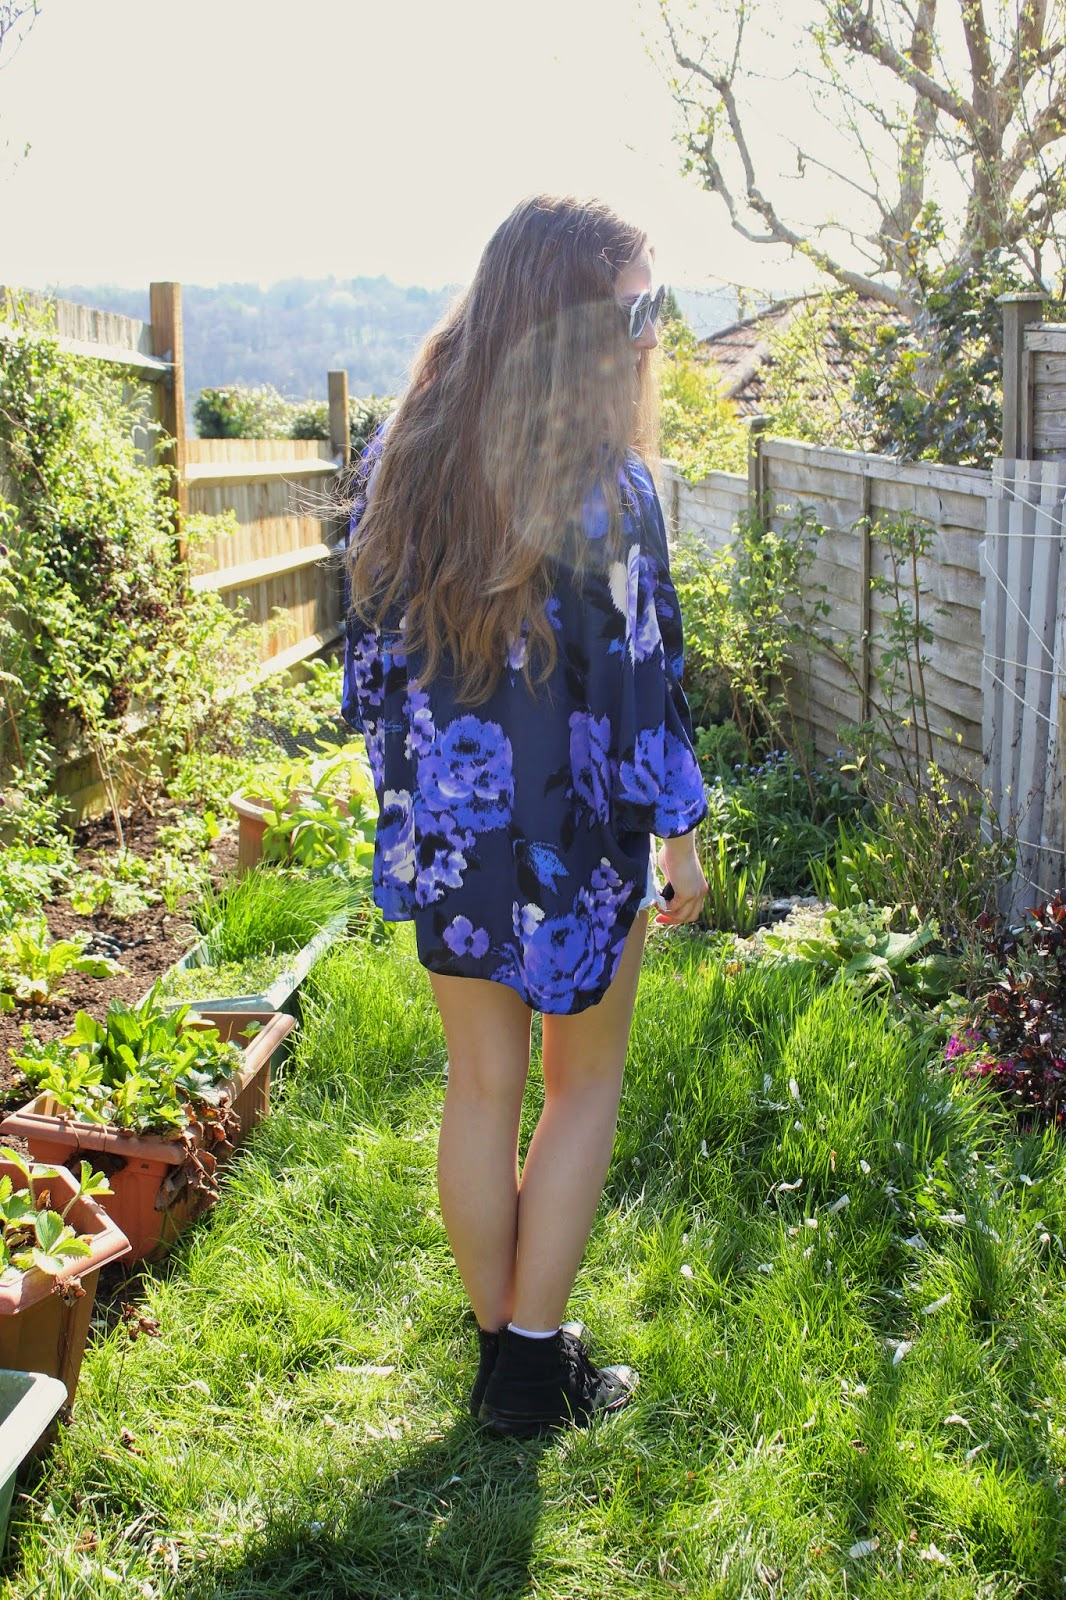 georgie-minter-brown-ootd-outfit-inspiration-blogger-fashion-kimono-new-look-clothes-style-top-topshop-shorts-levis-trainers-converse-sunglasses